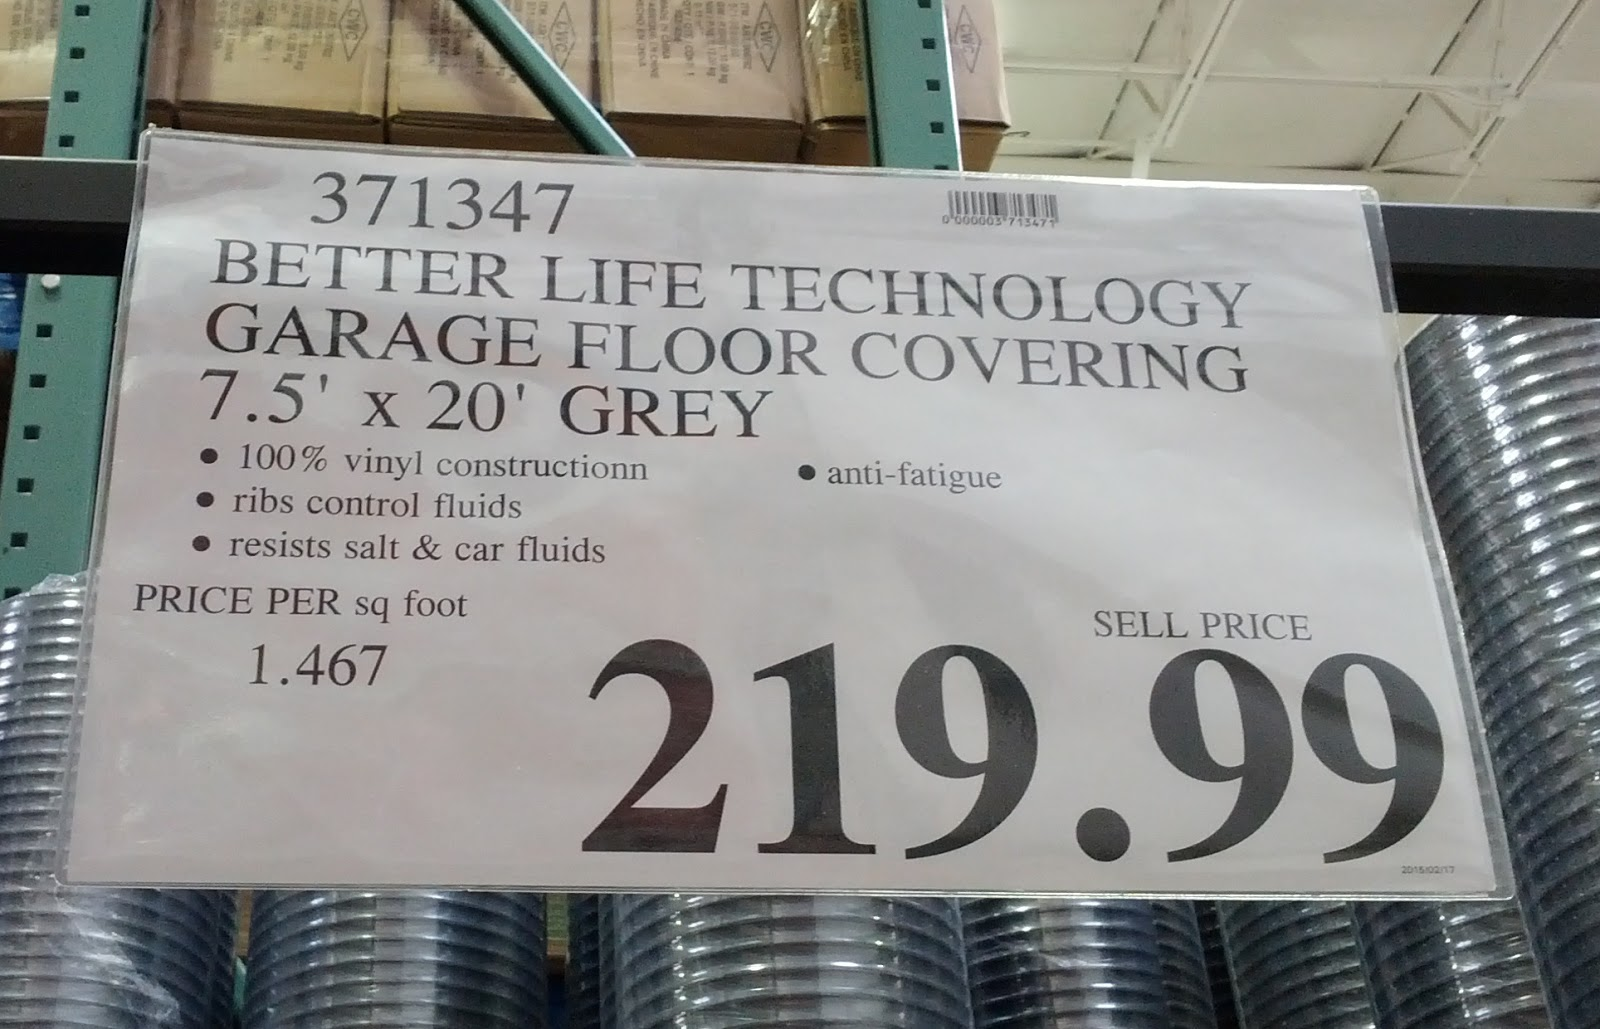 Better Life Technology G Floor Garage Flooring Covering Costco Weekender